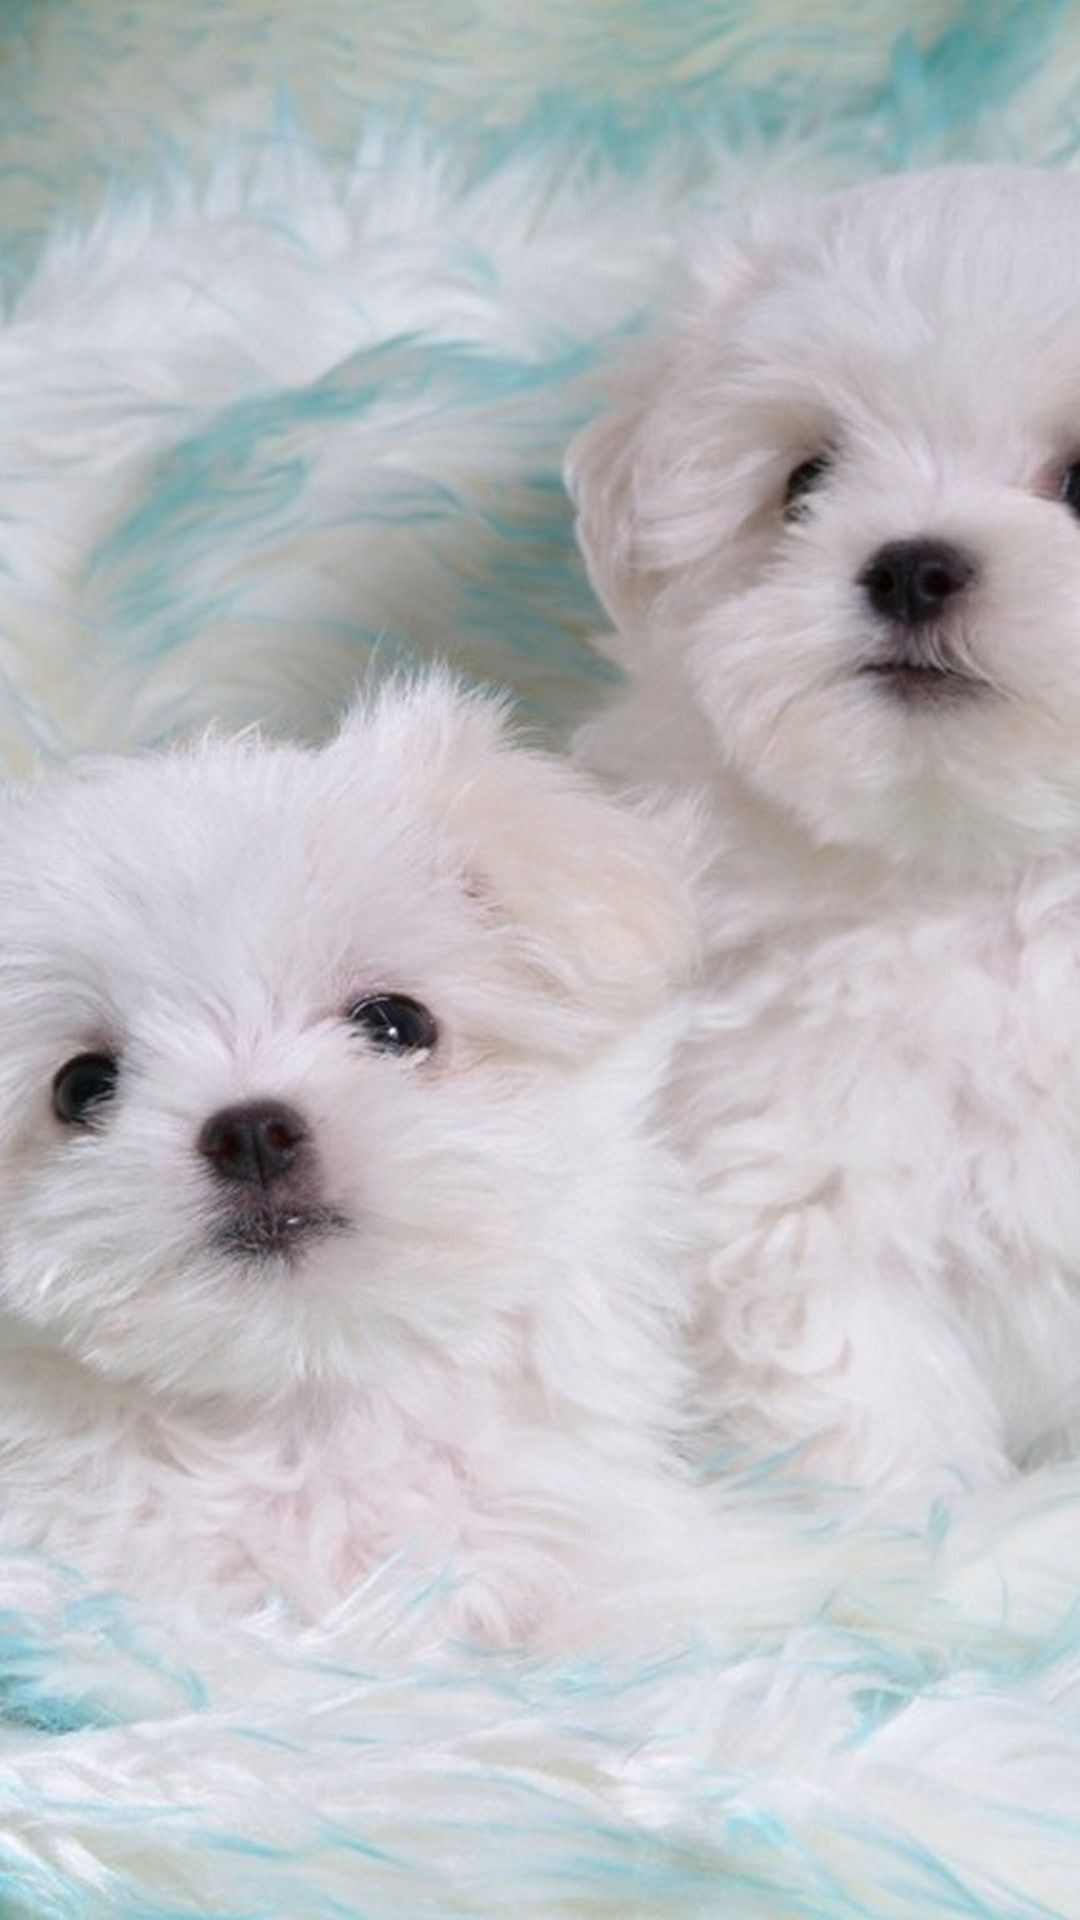 Maltese Puppies Wallpapers 04 Best Free Maltese Puppies Backgrounds For Android Cute Puppies Puppy Backgrounds Puppy Pictures